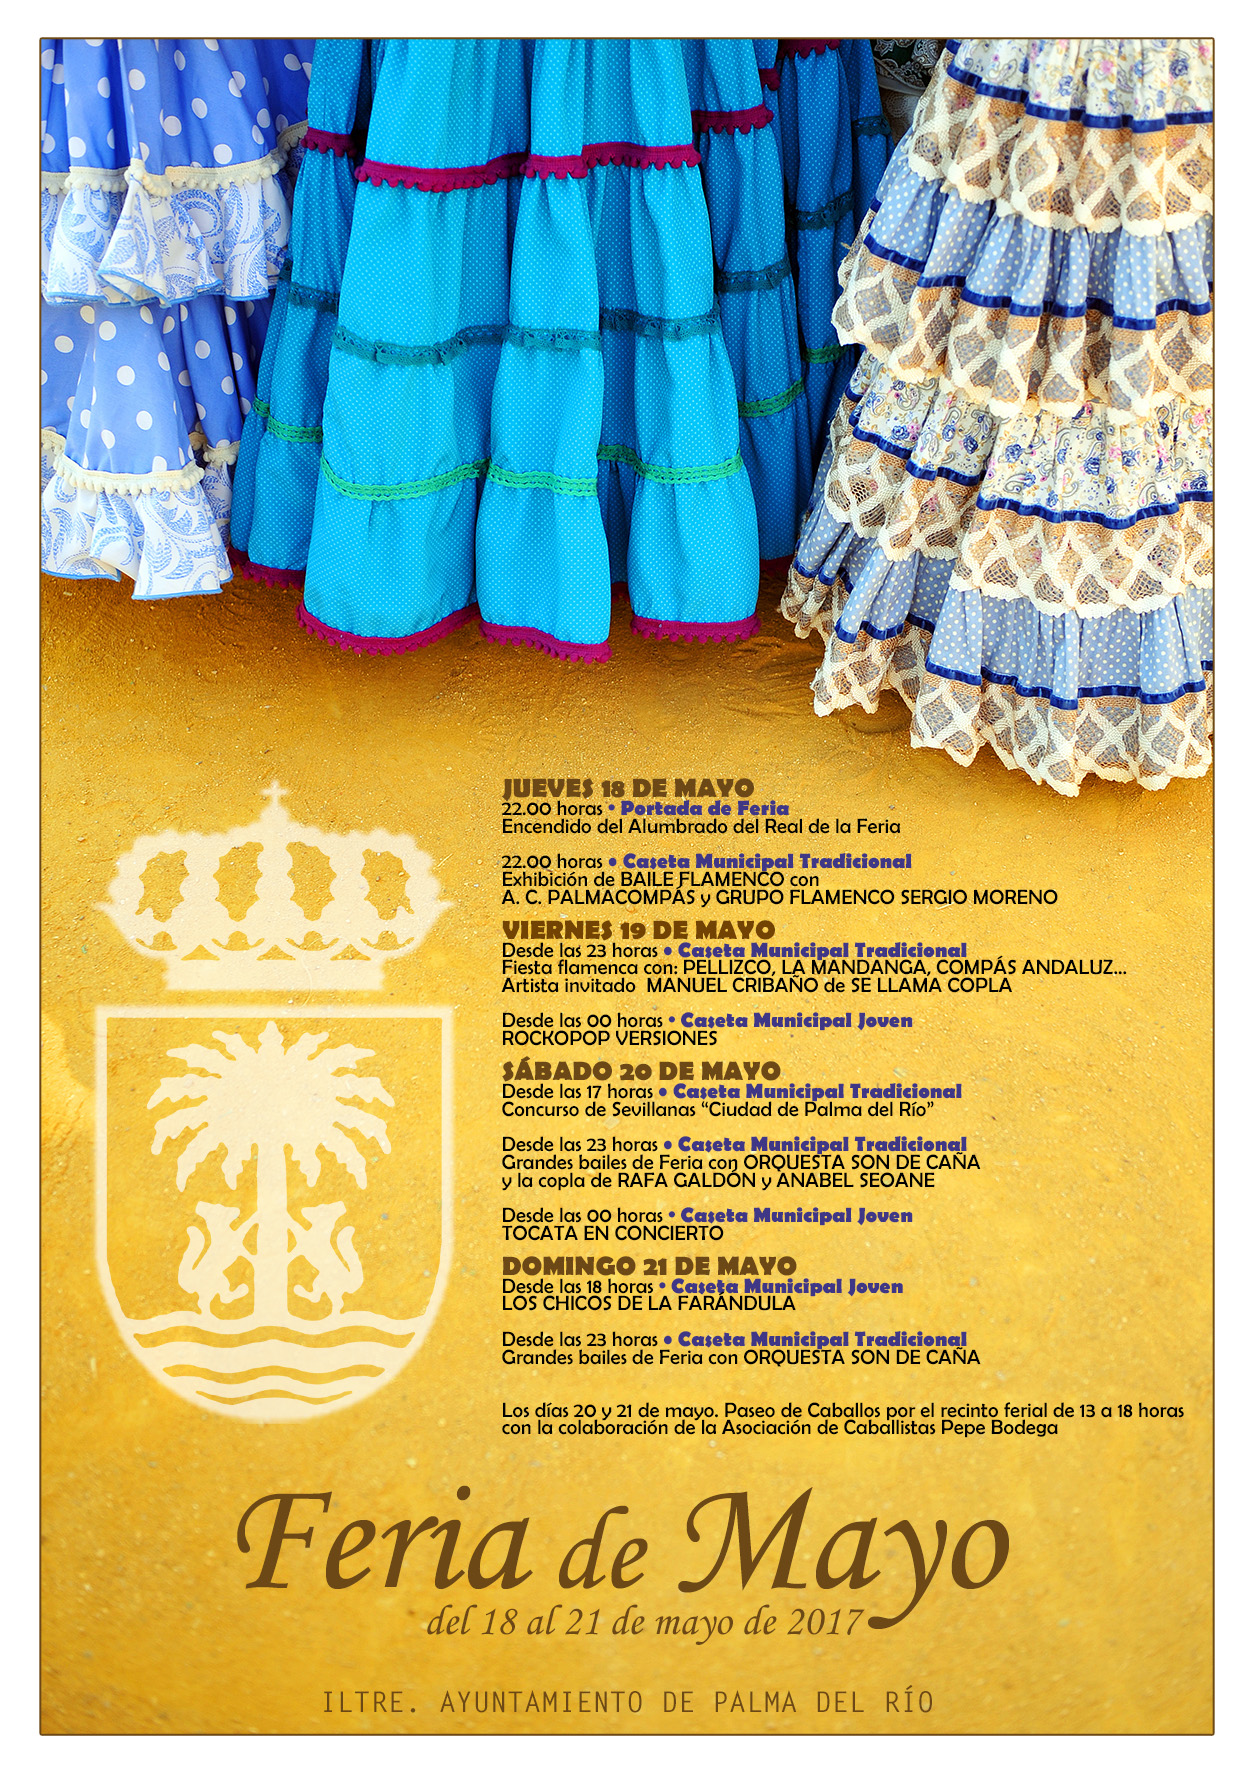 https://www.palmadelrio.es/sites/default/files/programa_corregido_cartel_feria_de_mayo_2017.jpg